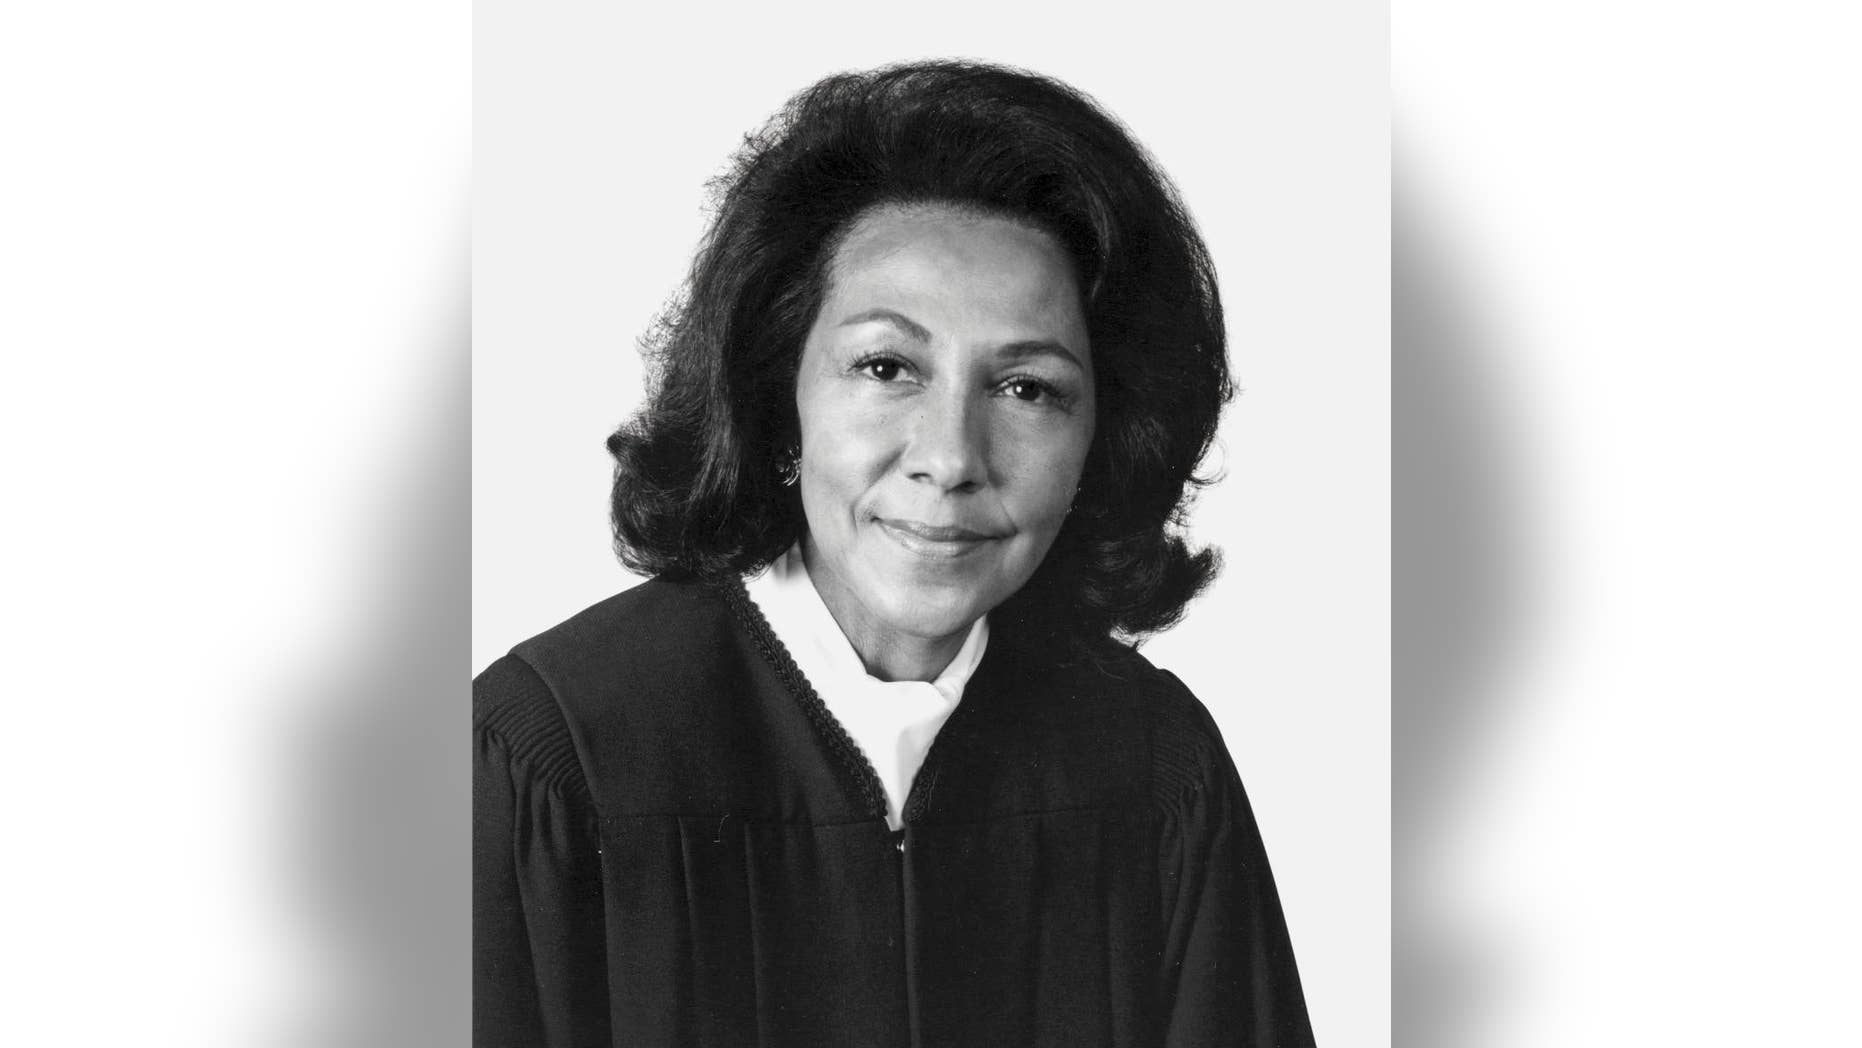 """This 1989 photo provided by Southwestern Law School shows Vaino Spencer, the first female black judge in California and one of the longest-serving jurists in state history. Spencer died of natural causes on Oct. 25, 2016, at the age of 96, her family said. Spencer's niece, Fatimah Gilliam, describes Spencer as """"a trailblazer and a self-made woman in an era when there were few opportunities for women and people of color."""" (Southwestern Law School via AP)"""